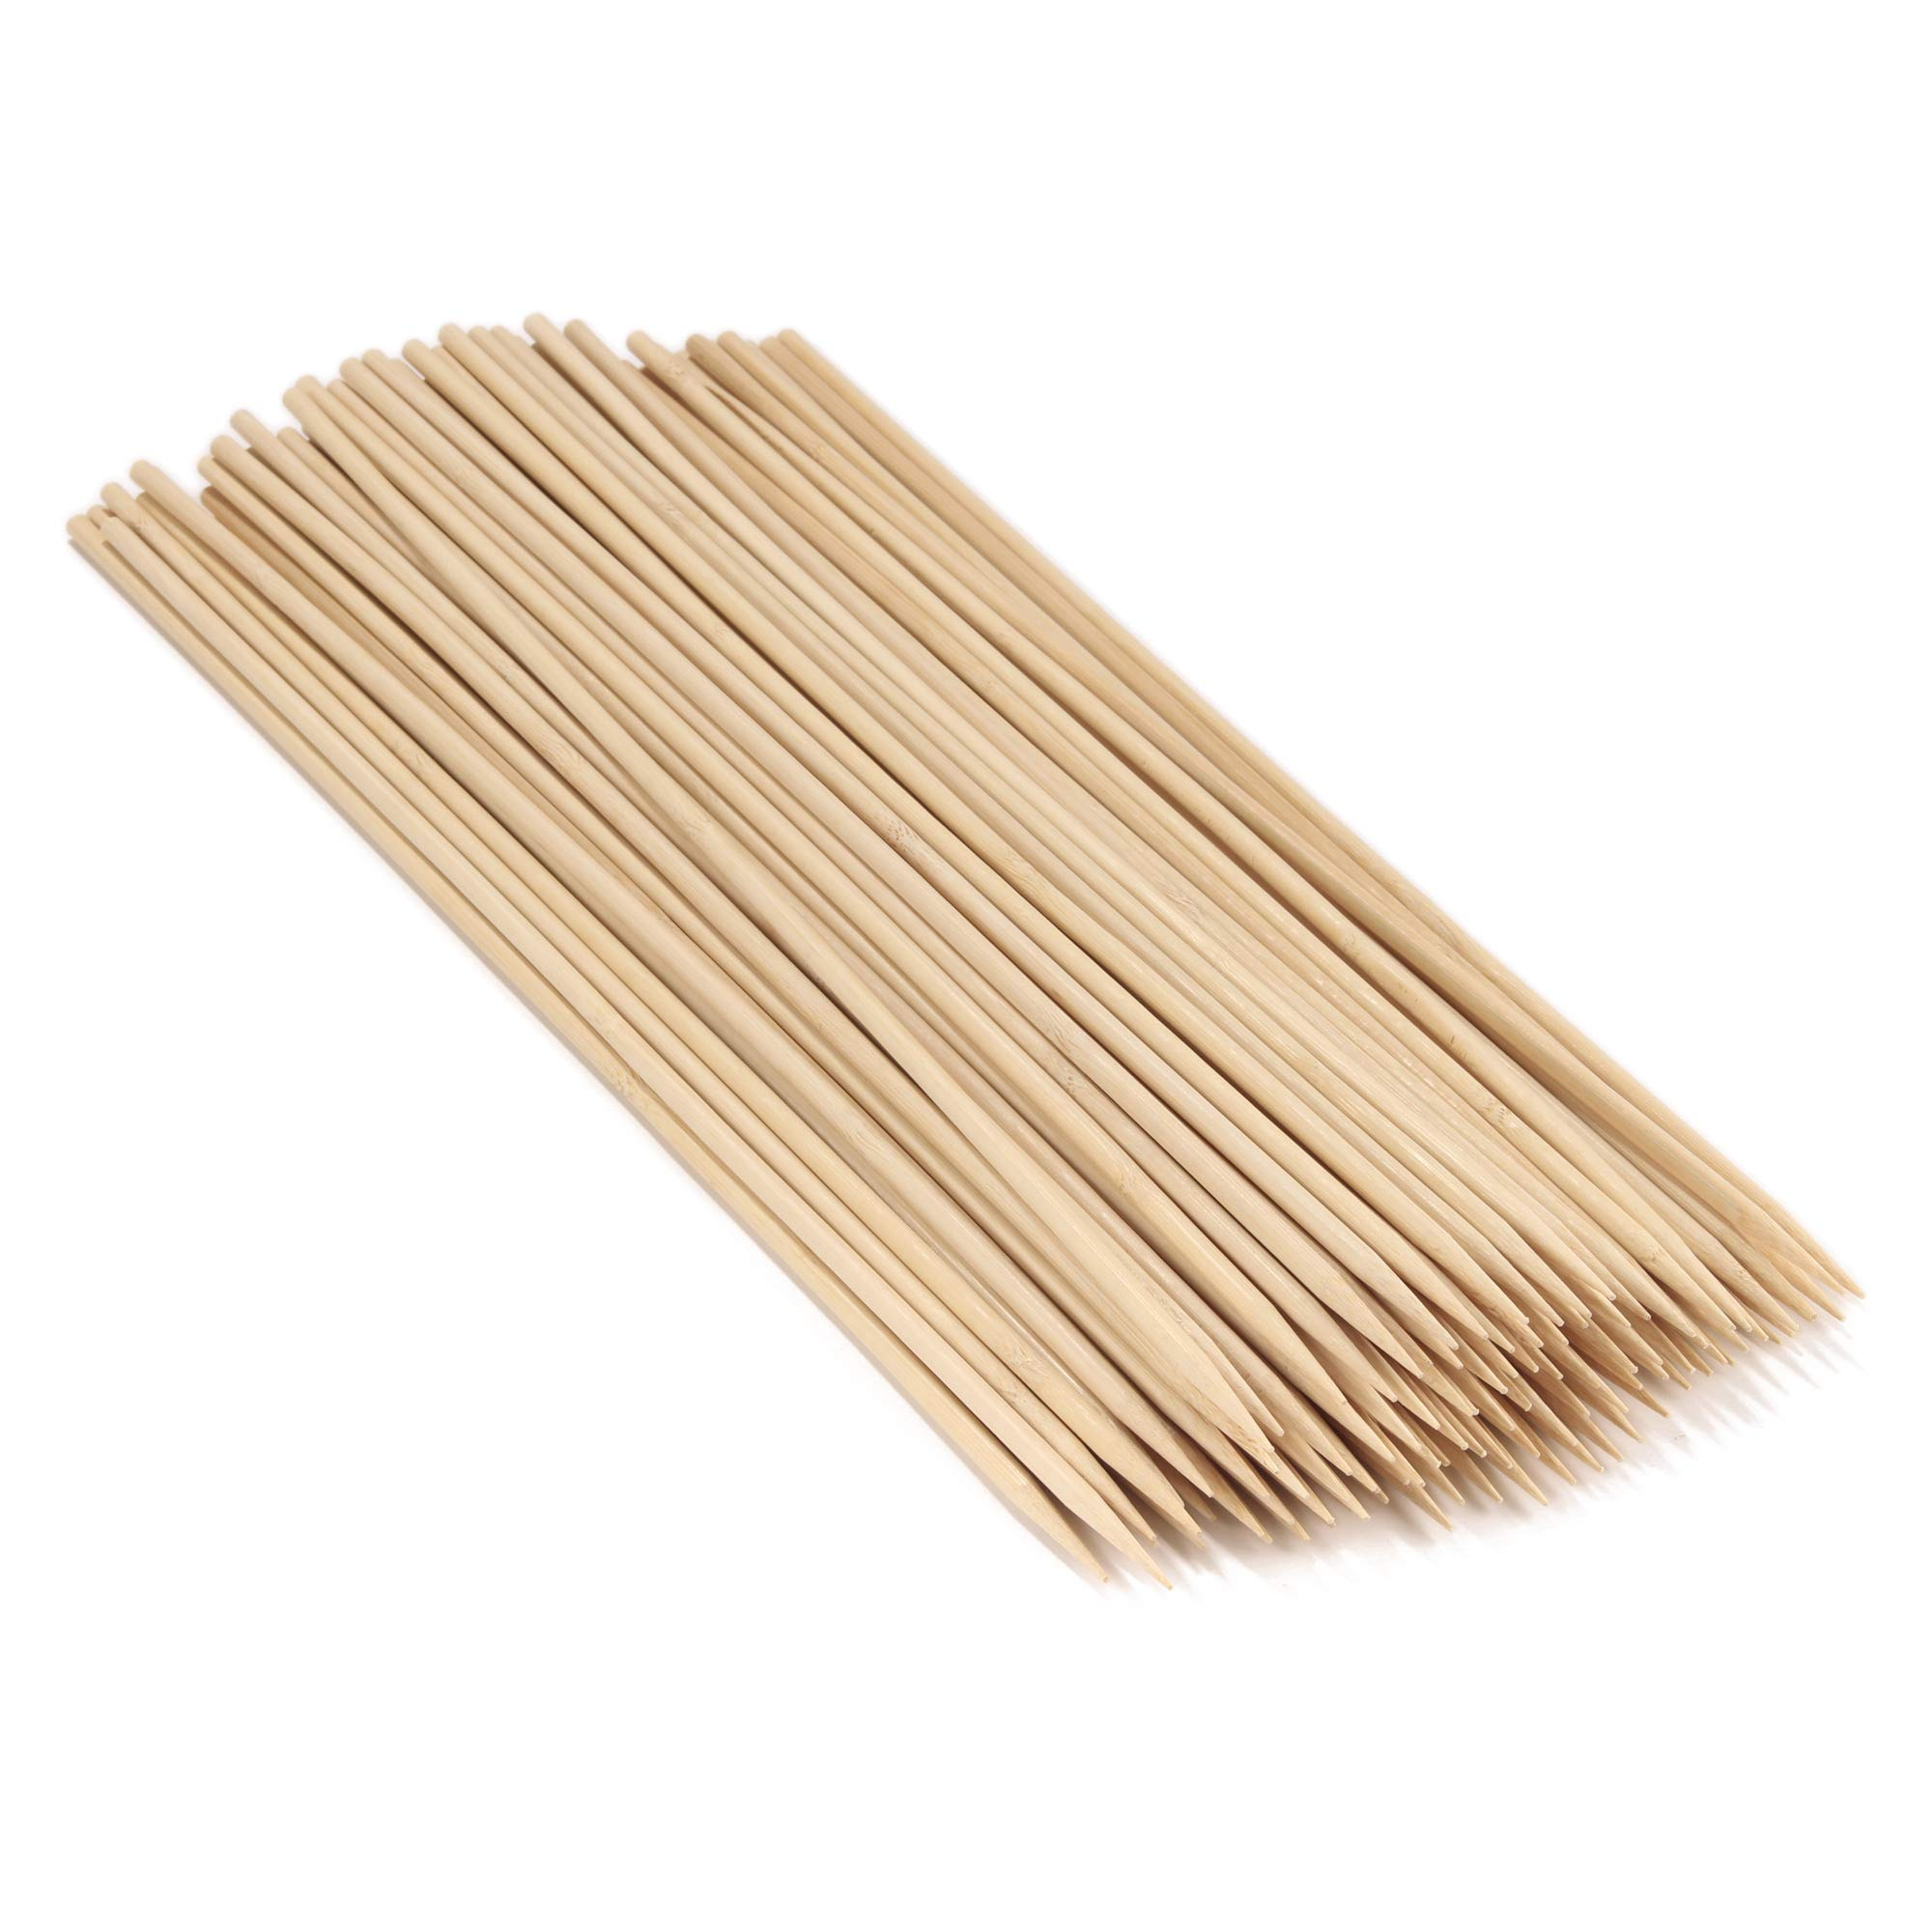 BambooMN 18'' Long x 5mm Thick Sharp Point Bamboo Kabab Satay BBQ Skewers Party Supplies, 1,000 Pieces